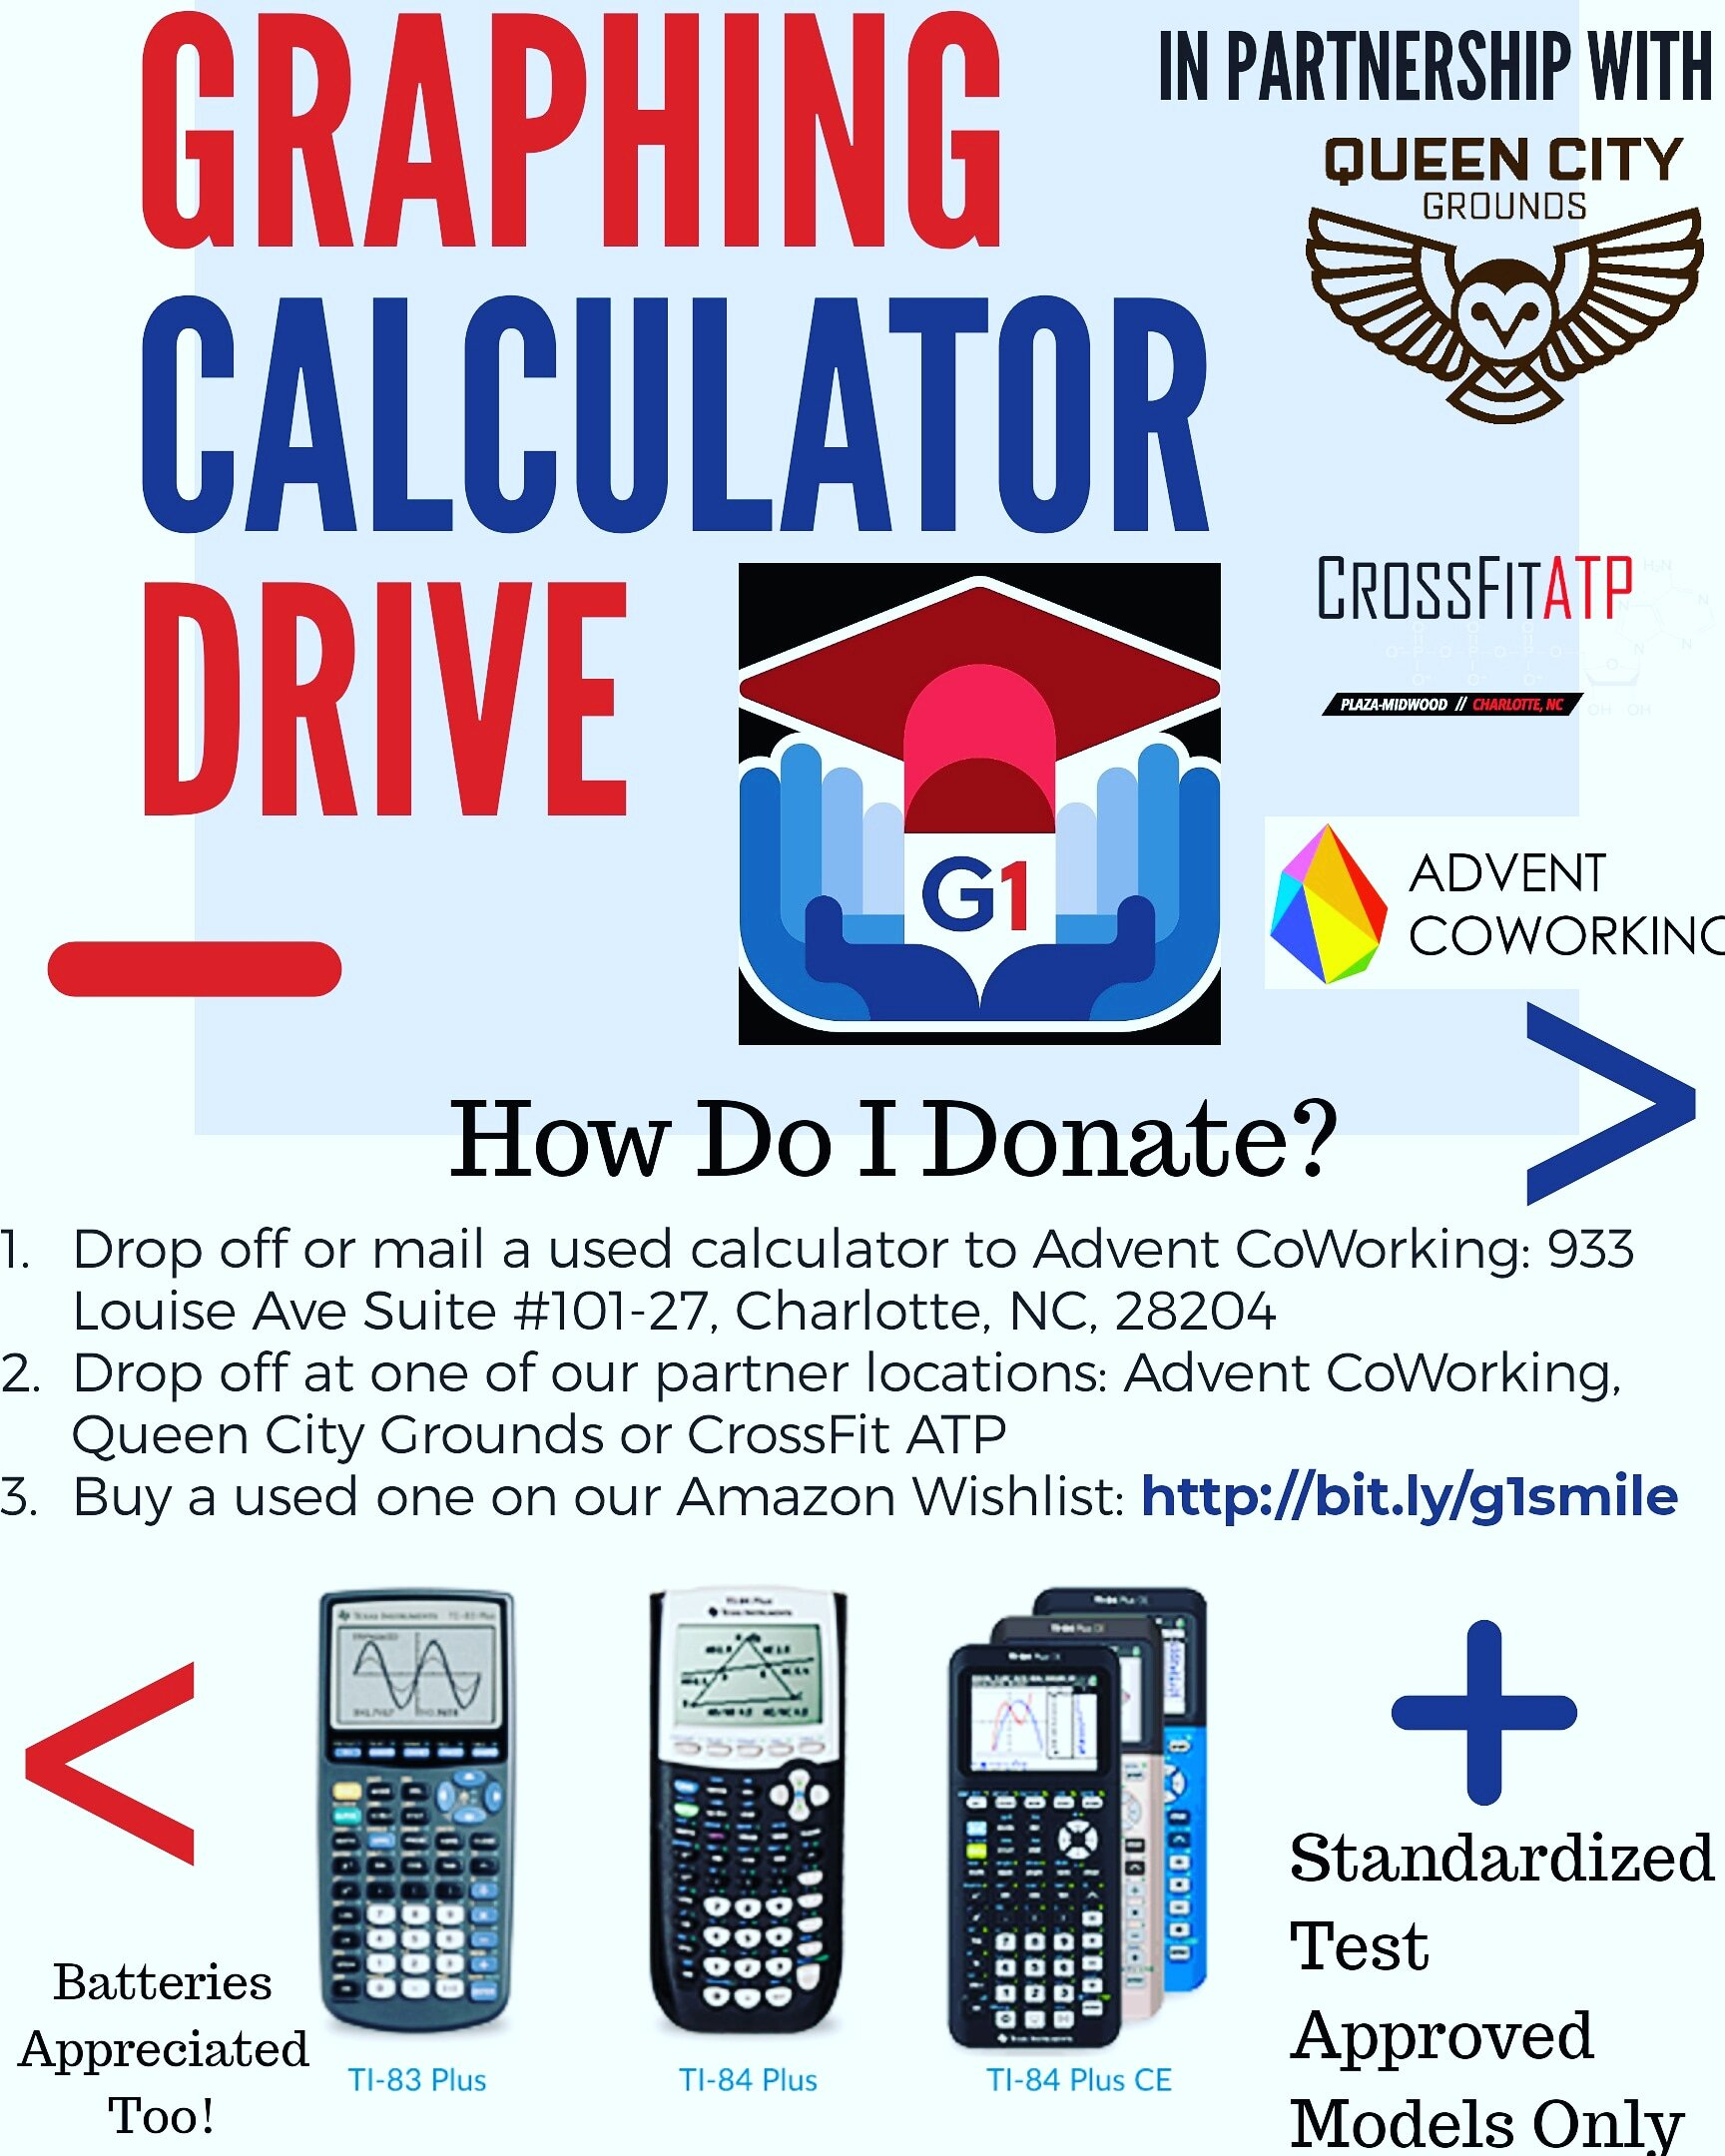 G1 Graphing Calculator Drive